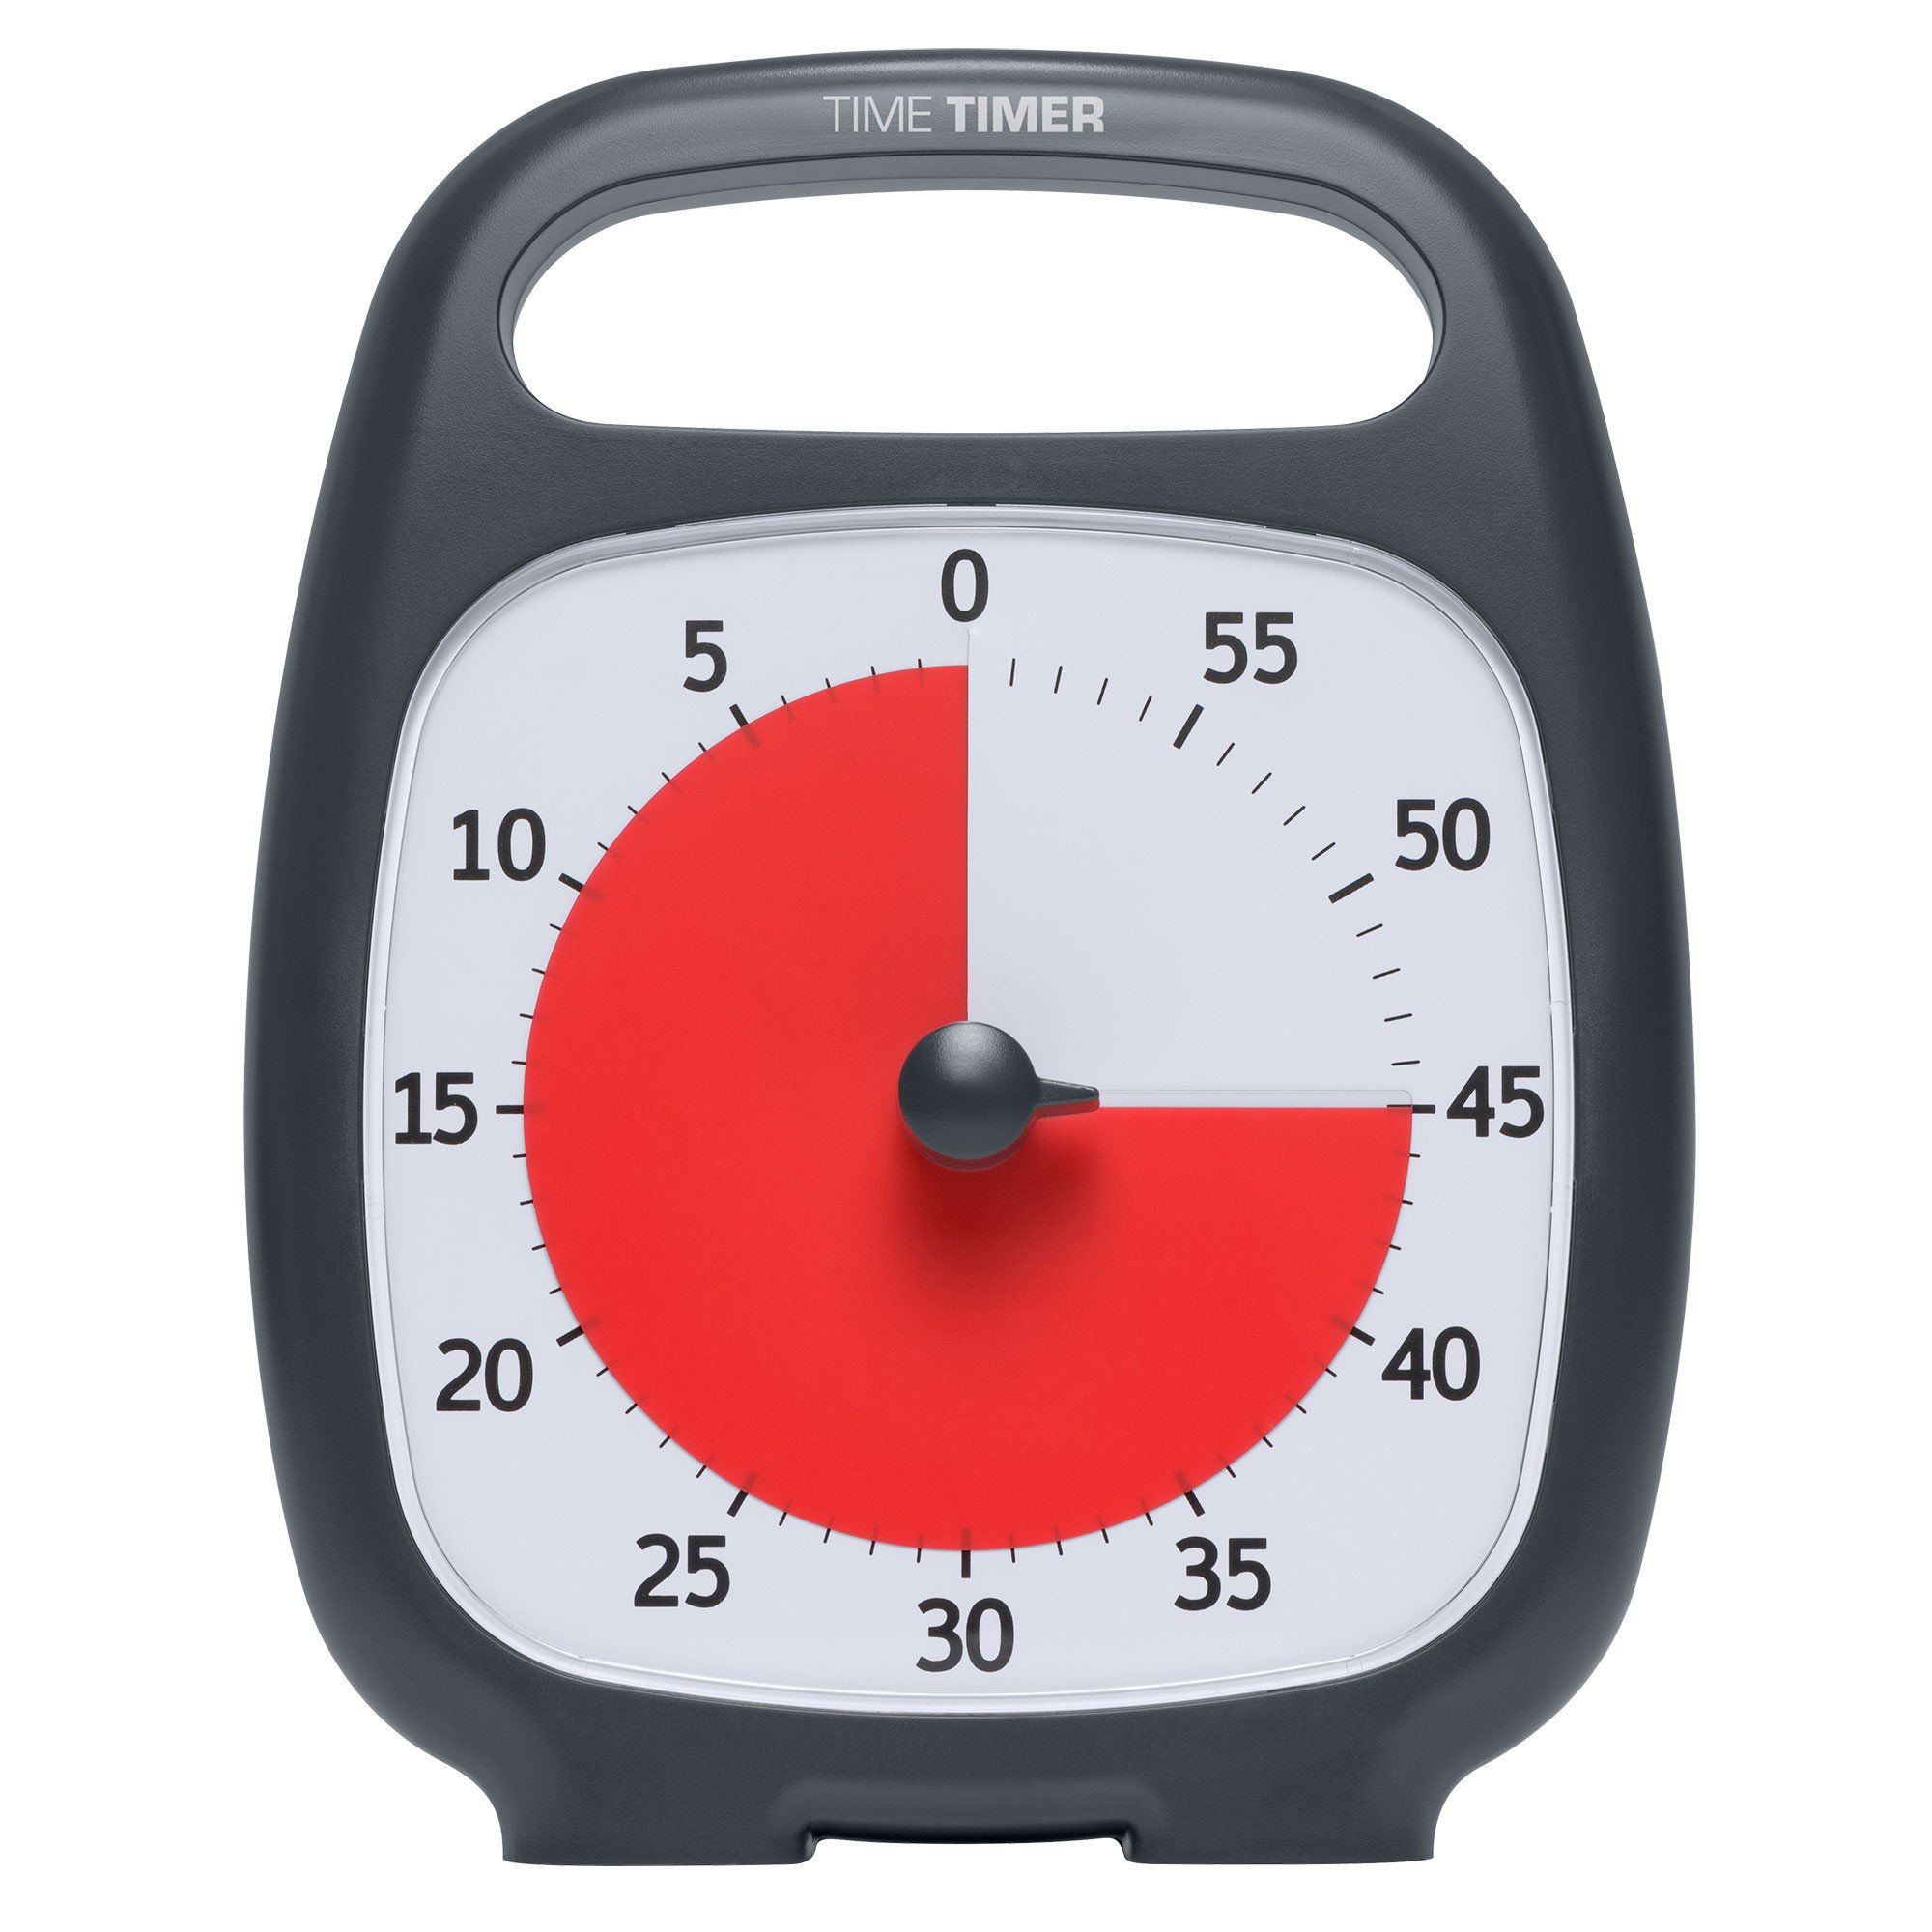 Time Timer Plus 60 Minute Visual Analog Timer (Charcoal) Optional Alert (Volume Control Dial) No Loud Ticking; Time Management Tool